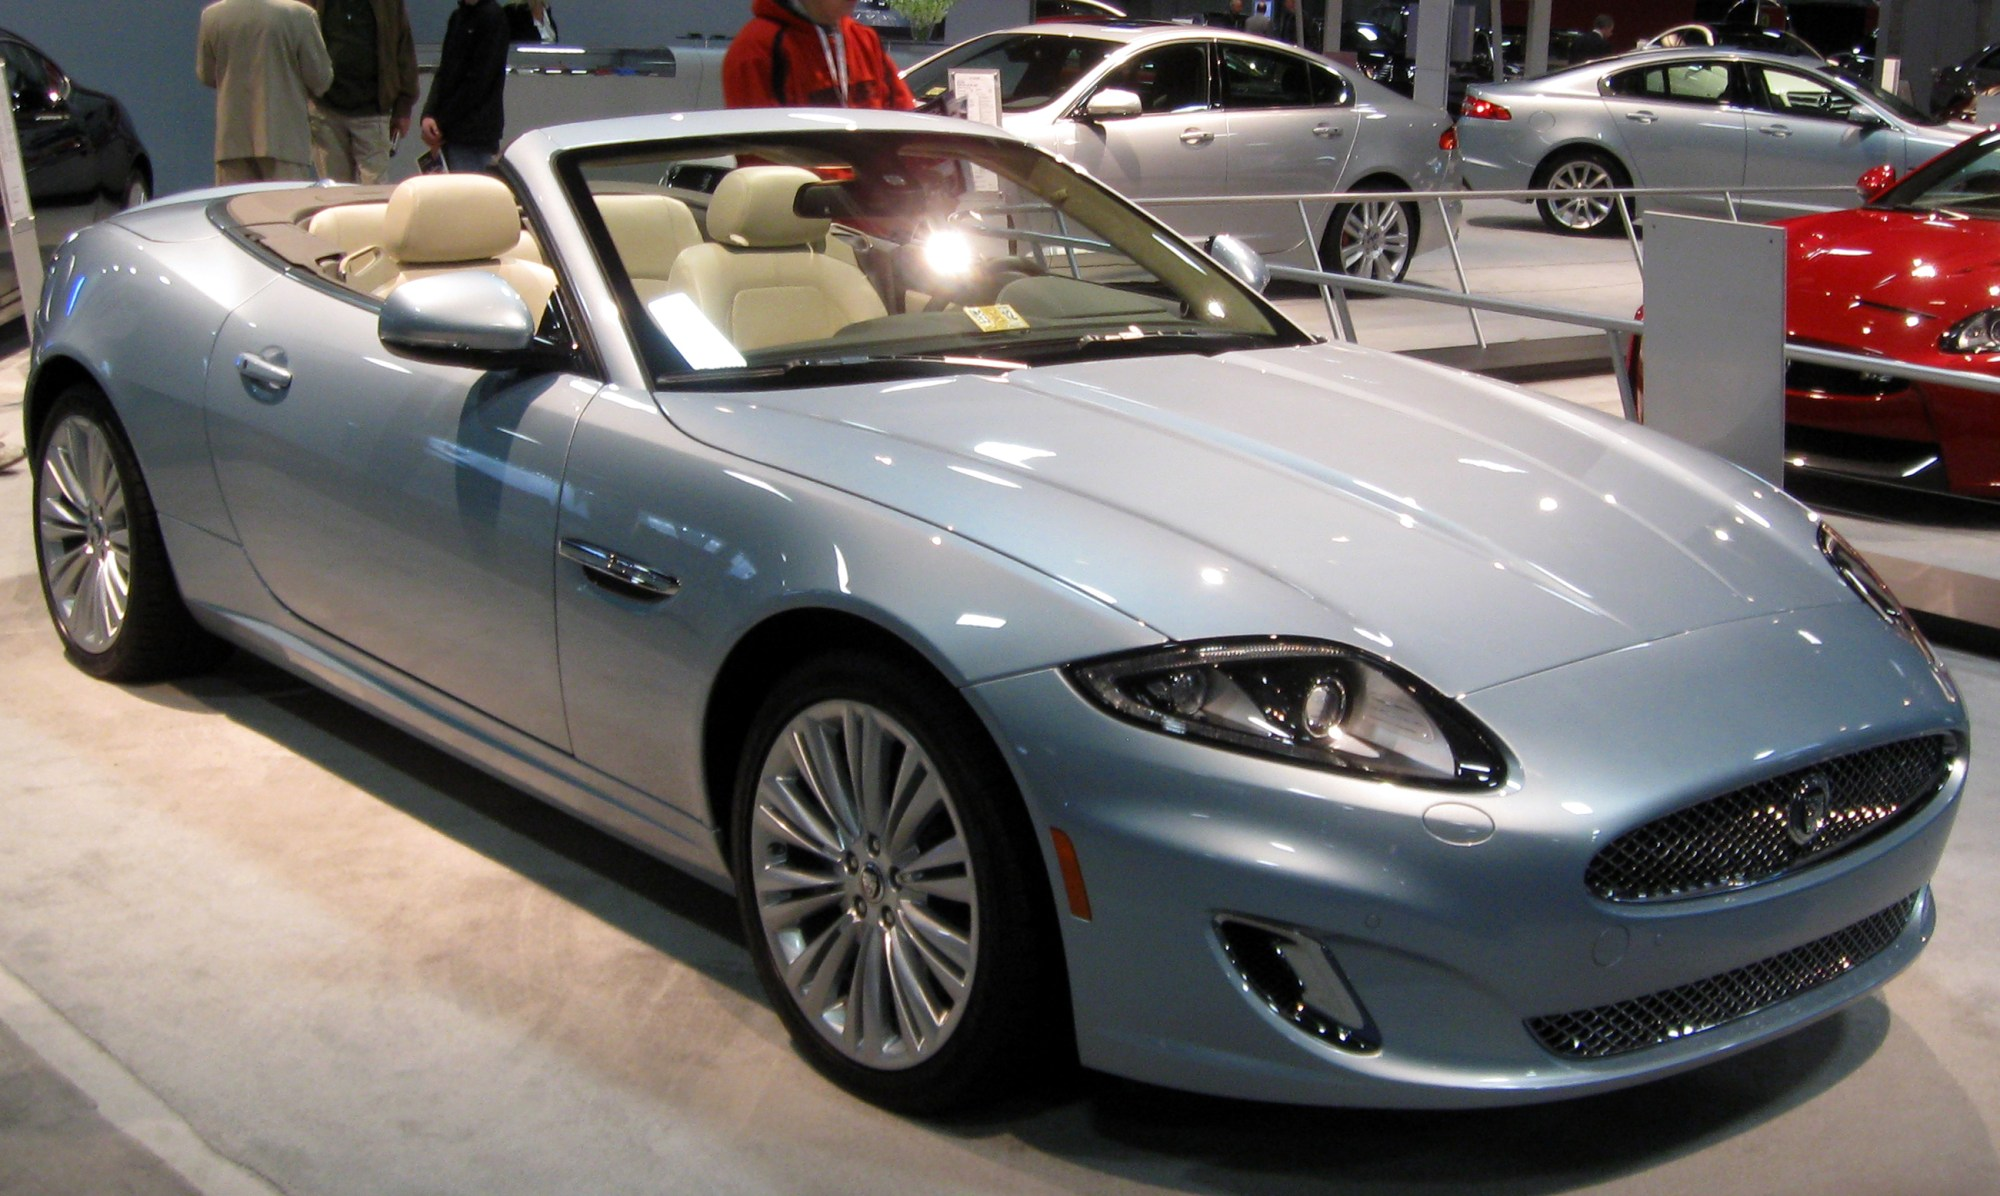 hight resolution of file 2012 jaguar xk convertible 2012 dc jpg